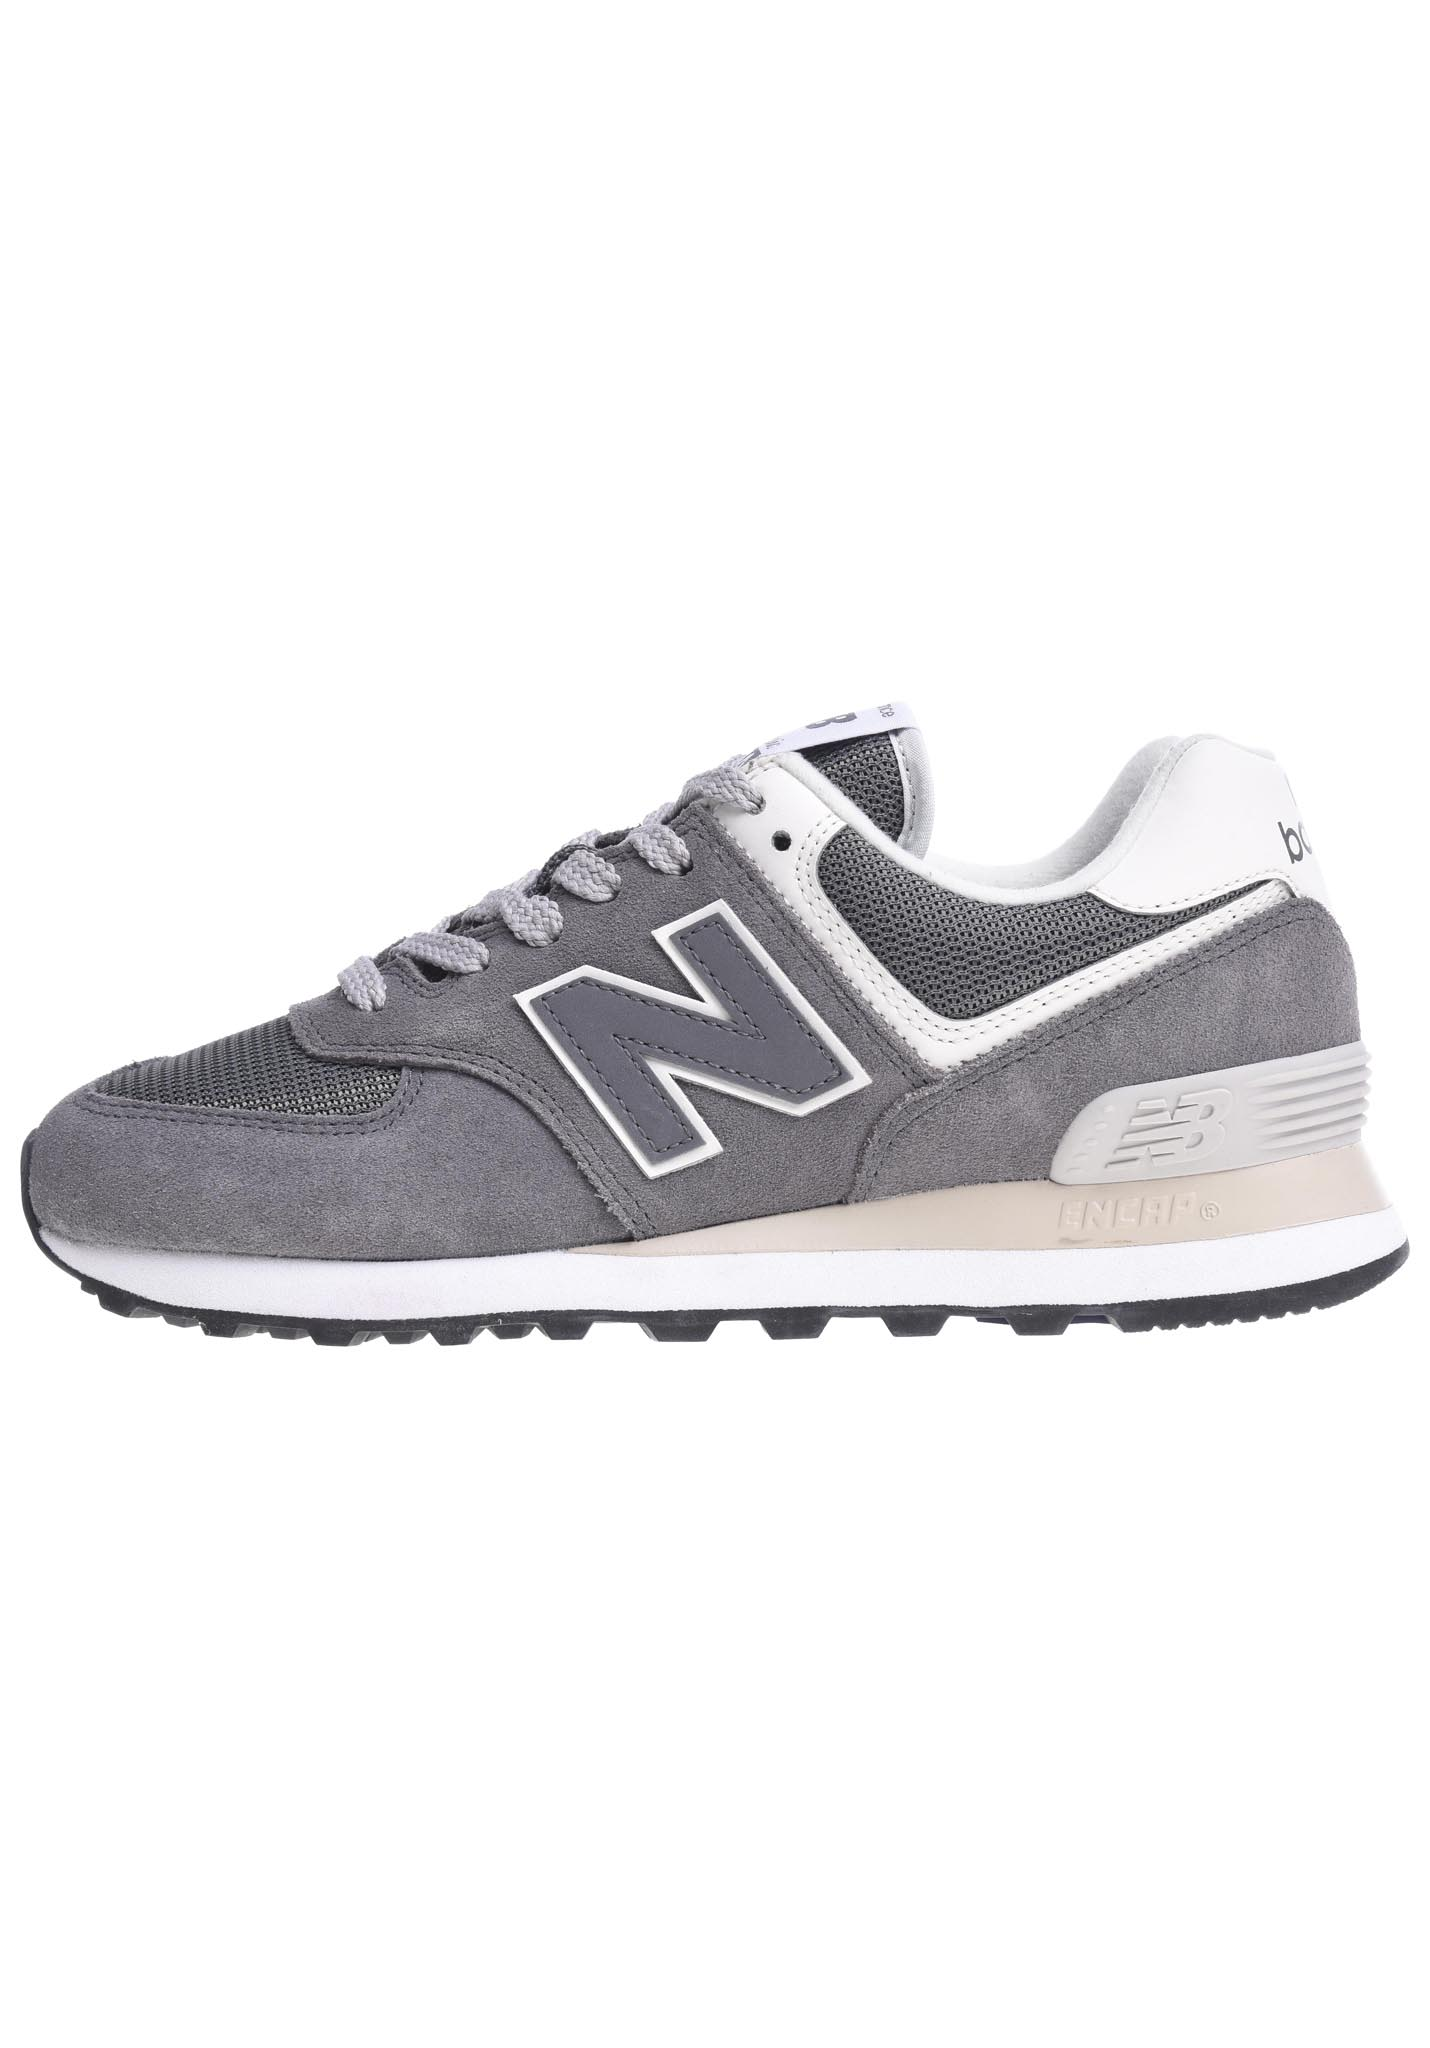 Buy > new balance sneakers damen Limit discounts 56% OFF